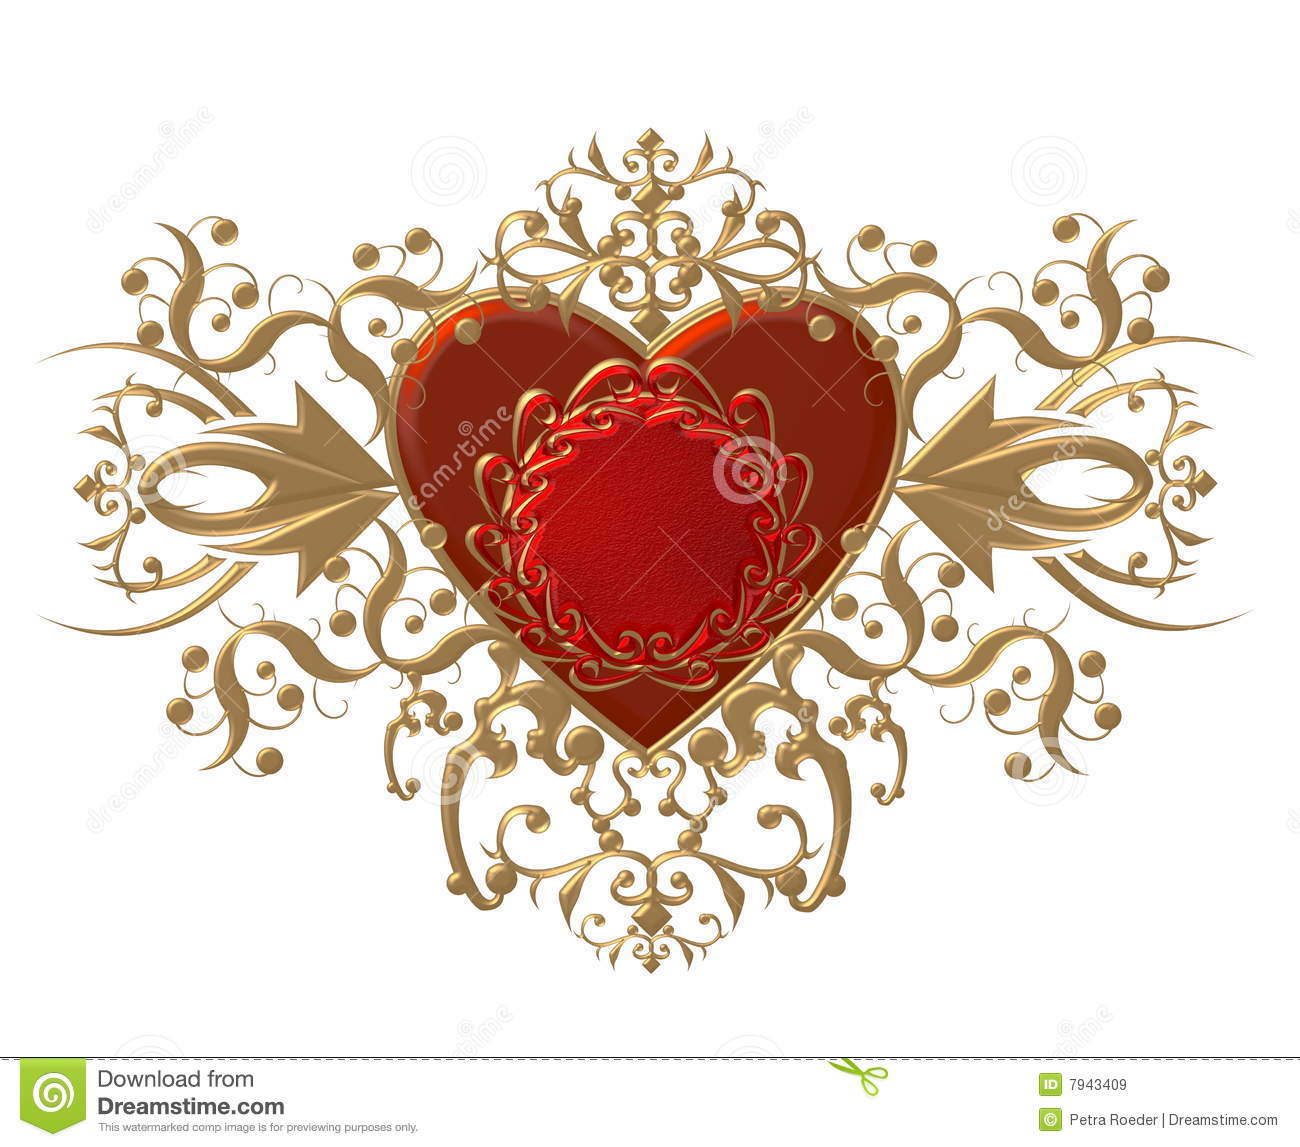 An Illustration Of A Red Heart With Gold Filigree Surrounding It